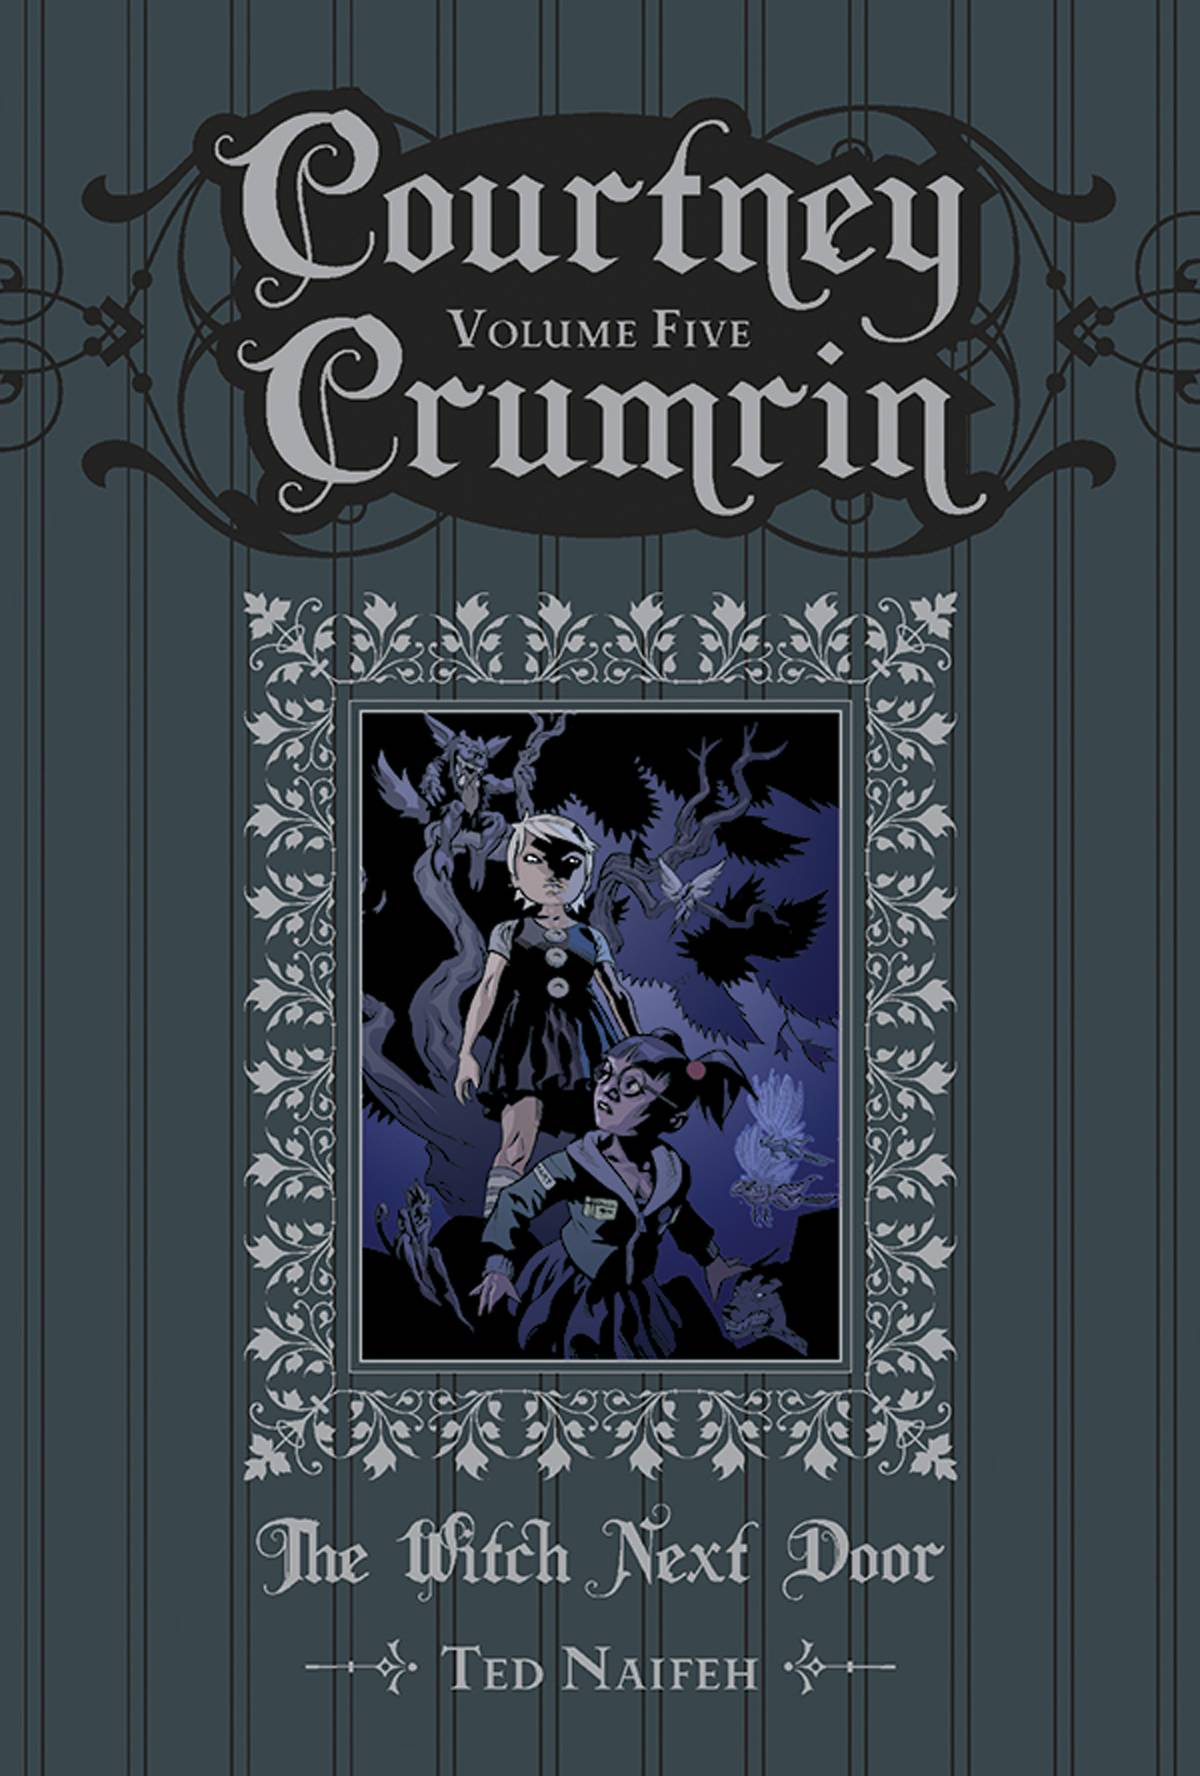 COURTNEY CRUMRIN SPEC ED HC VOL 05